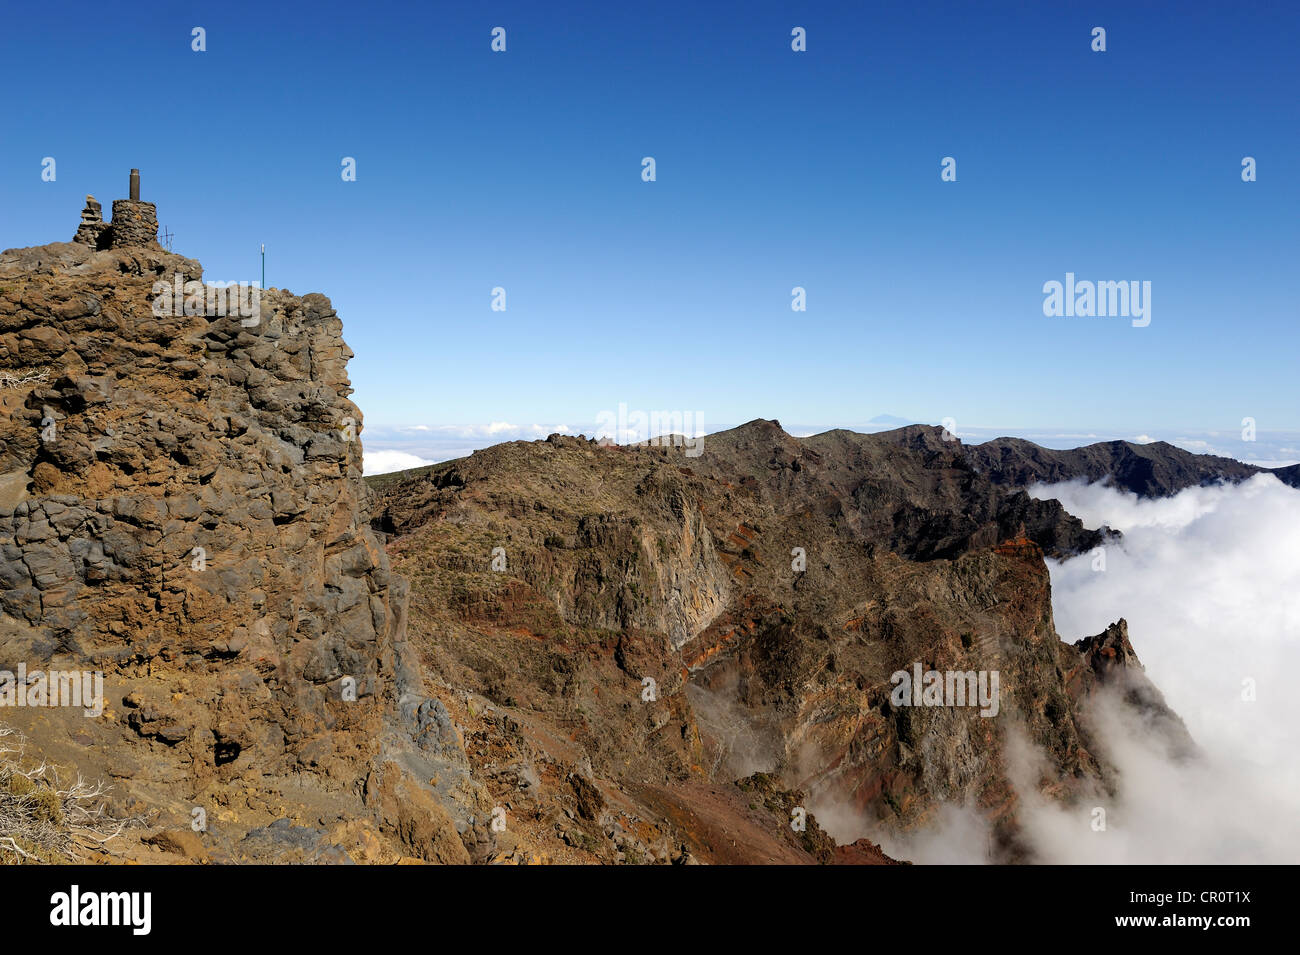 Summit of the Pico Fuente Nueva with a sea of clouds in the Caldera de Taburiente National Park, La Palma, Canary - Stock Image